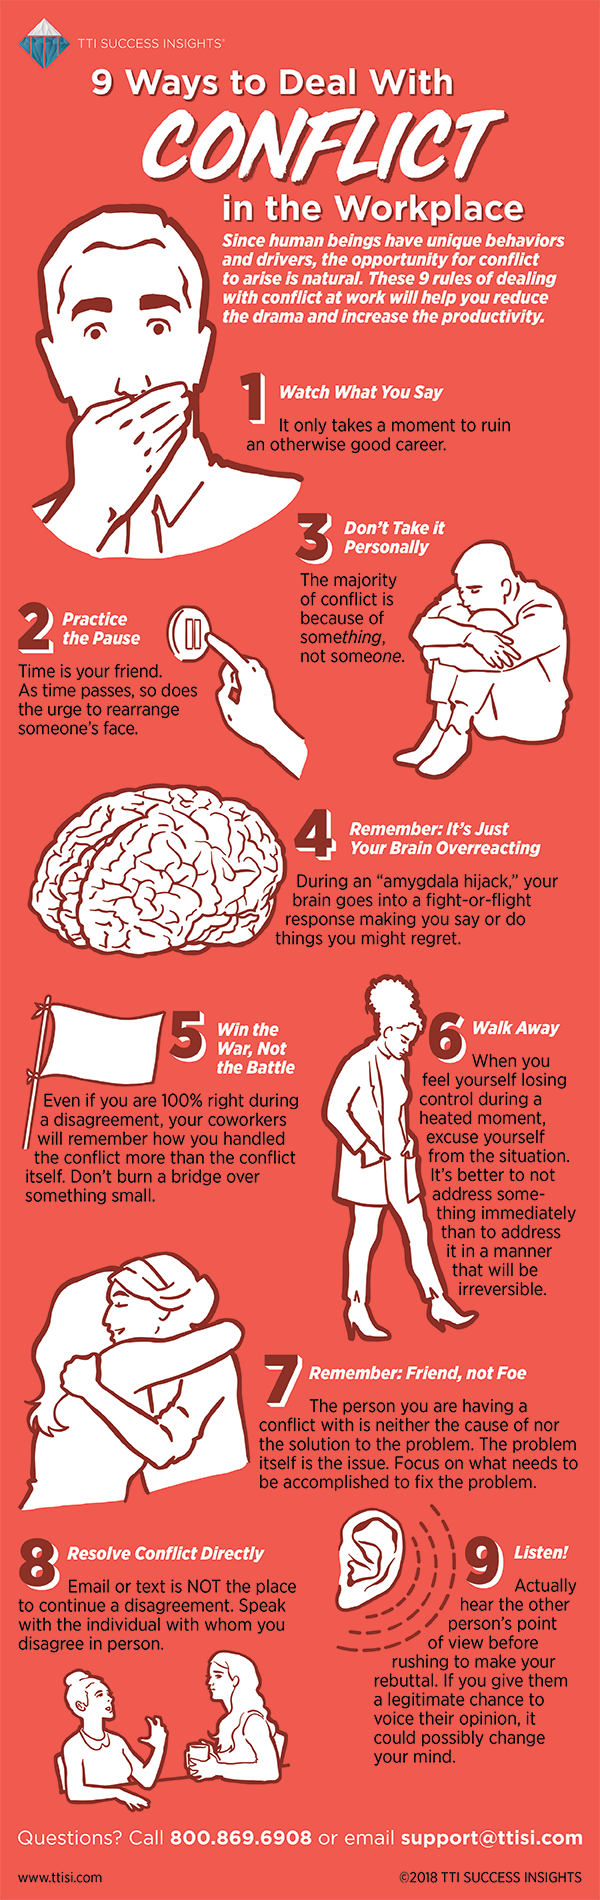 9 Ways_Deal_With_Conflict_Workplace_Infographic3.png